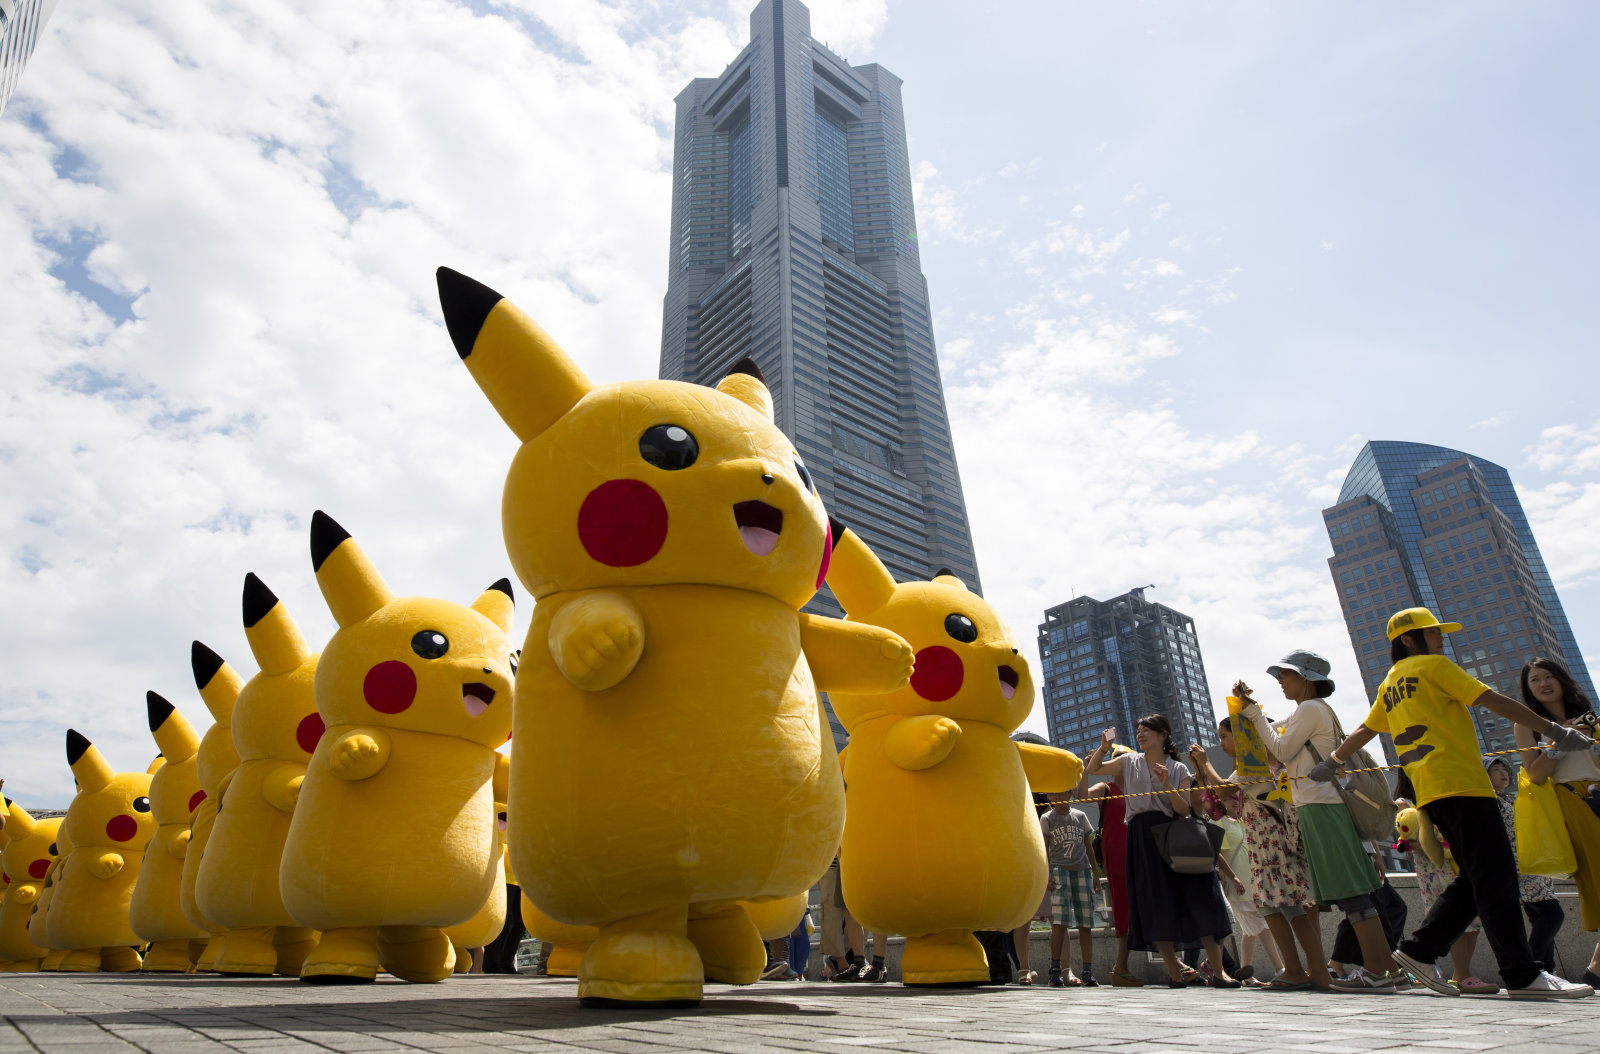 YOKOHAMA, JAPAN - AUGUST 09:  Performers dressed as Pikachu, a character from Pokemon series game titles, march during the Pikachu Outbreak event hosted by The Pokemon Co. on August 9, 2017 in Yokohama, Kanagawa, Japan. A total of 1, 500 Pikachus appear at the city's landmarks in the Minato Mirai area aiming to attract visitors and tourists to the city. The event will be held through until August 15.  (Photo by Tomohiro Ohsumi/Getty Images)